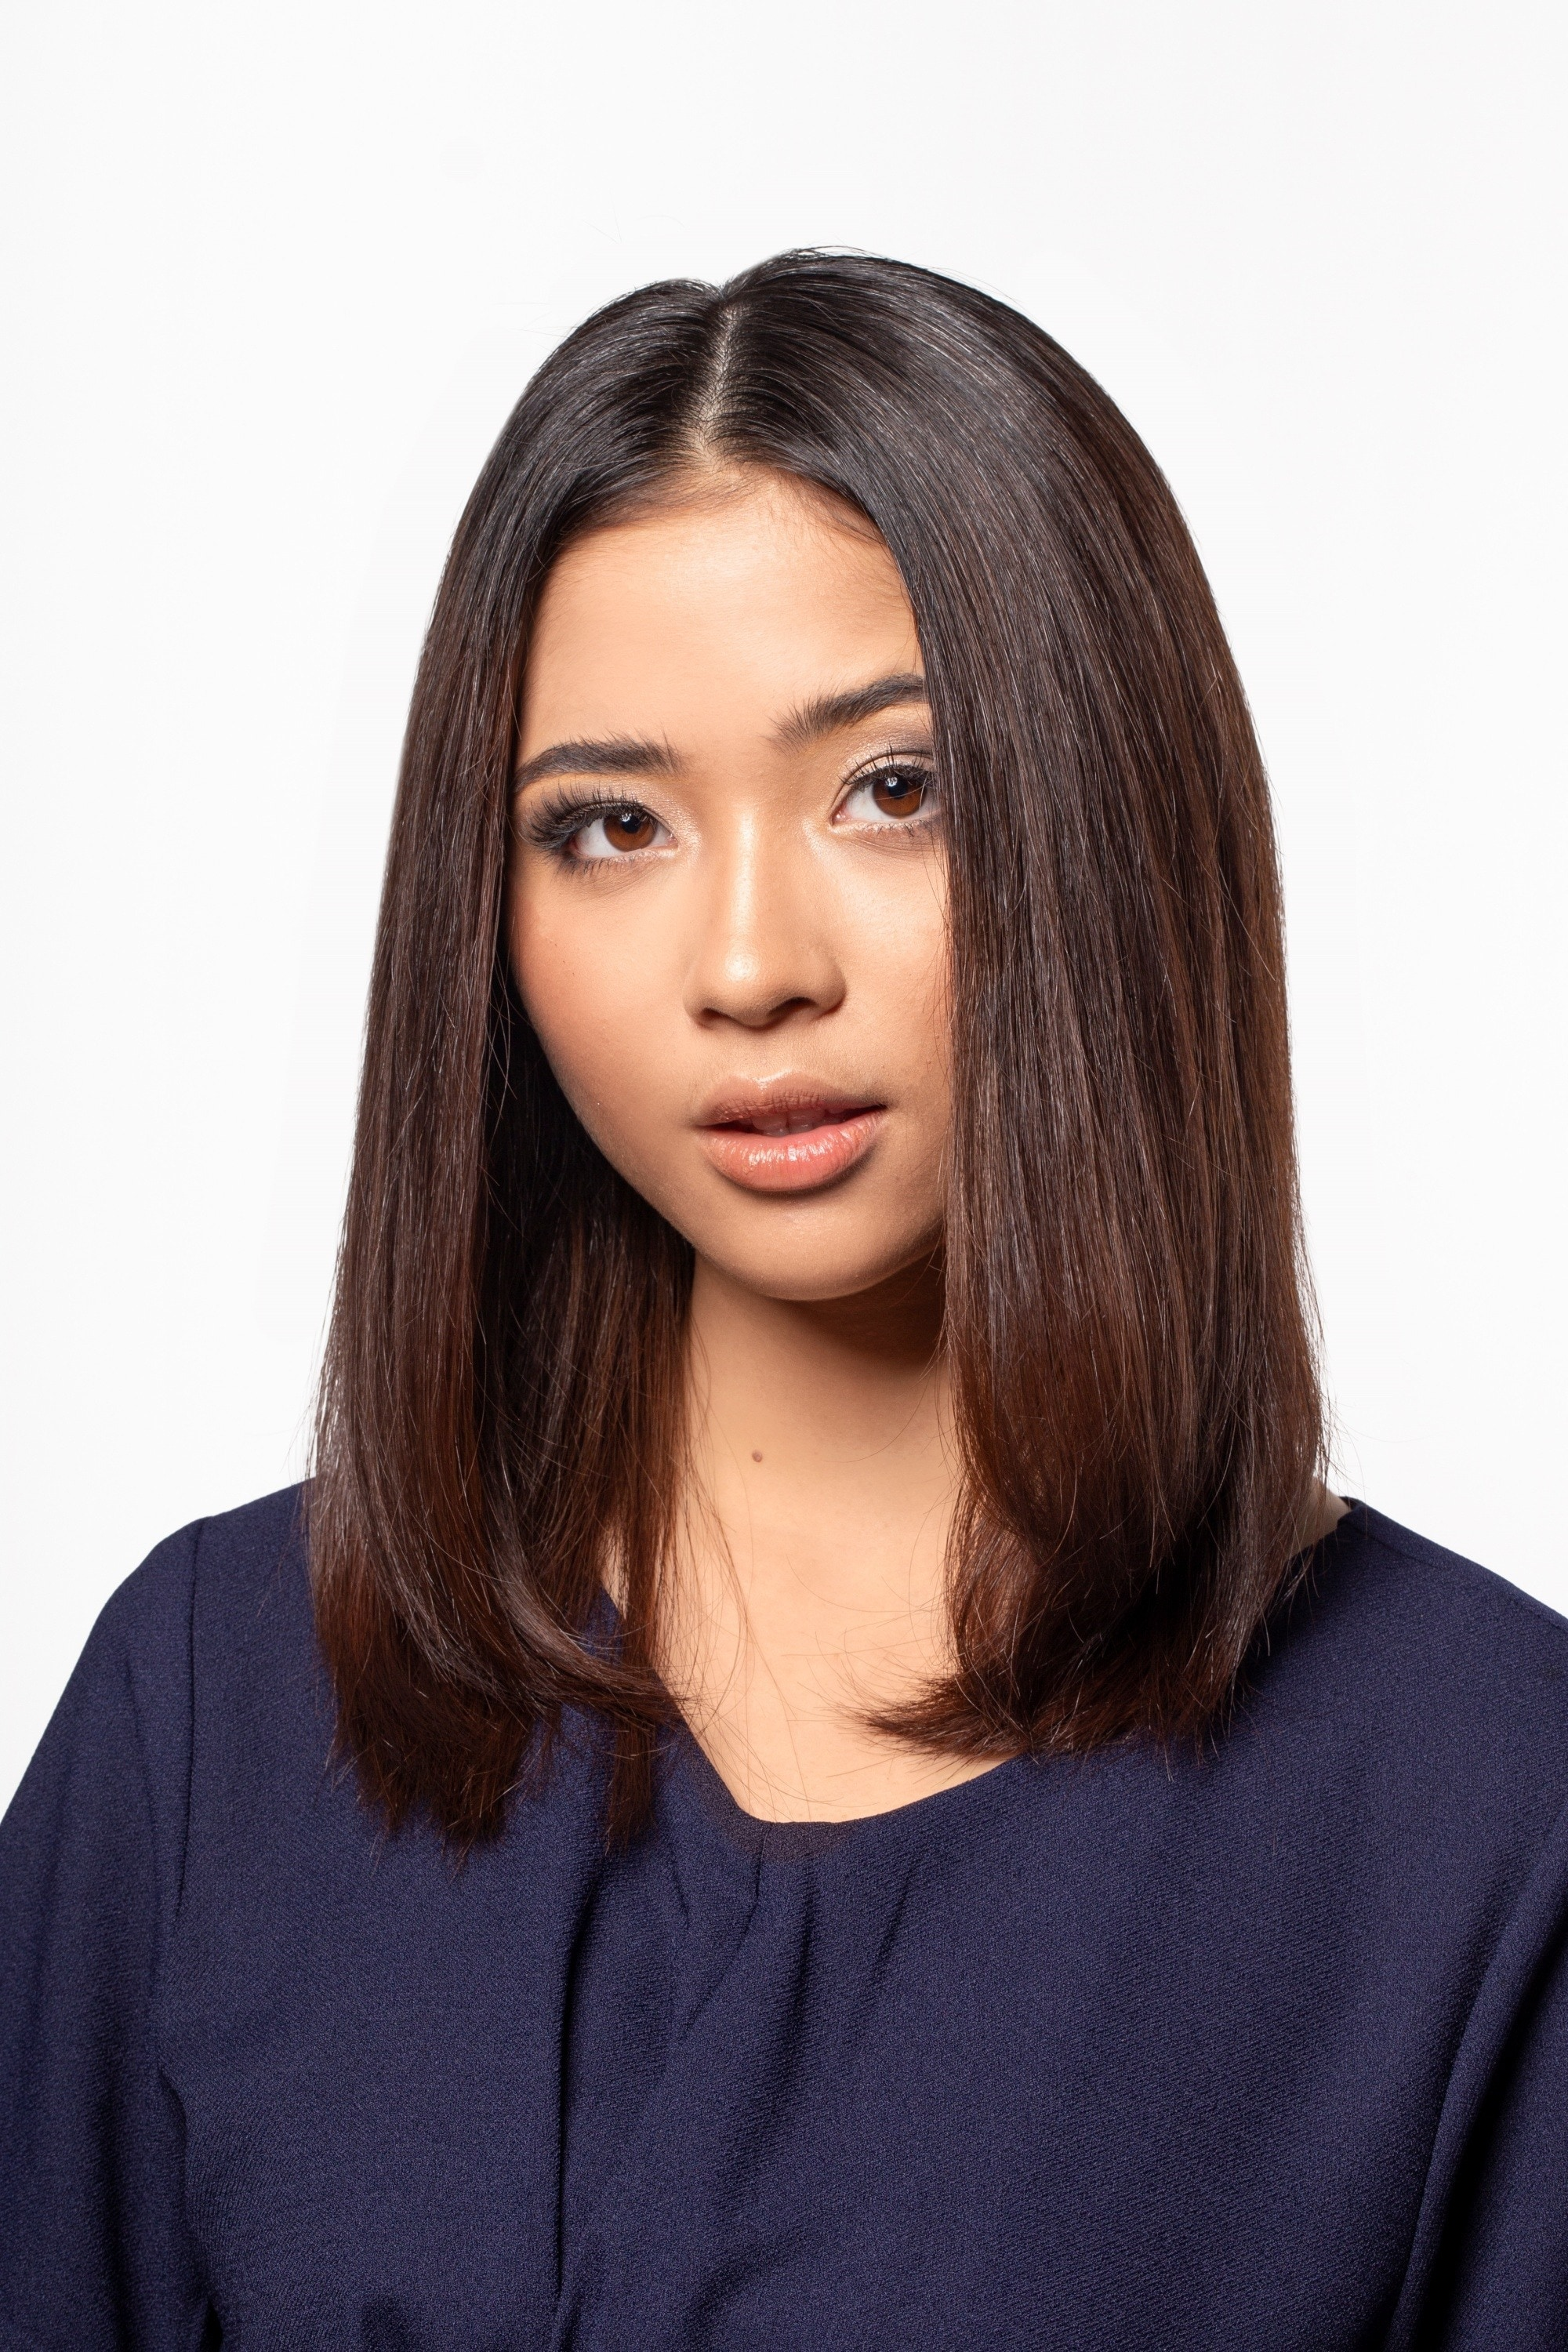 Hair facts: Asian woman with shoulder-length dark hair wearing a dark blue top